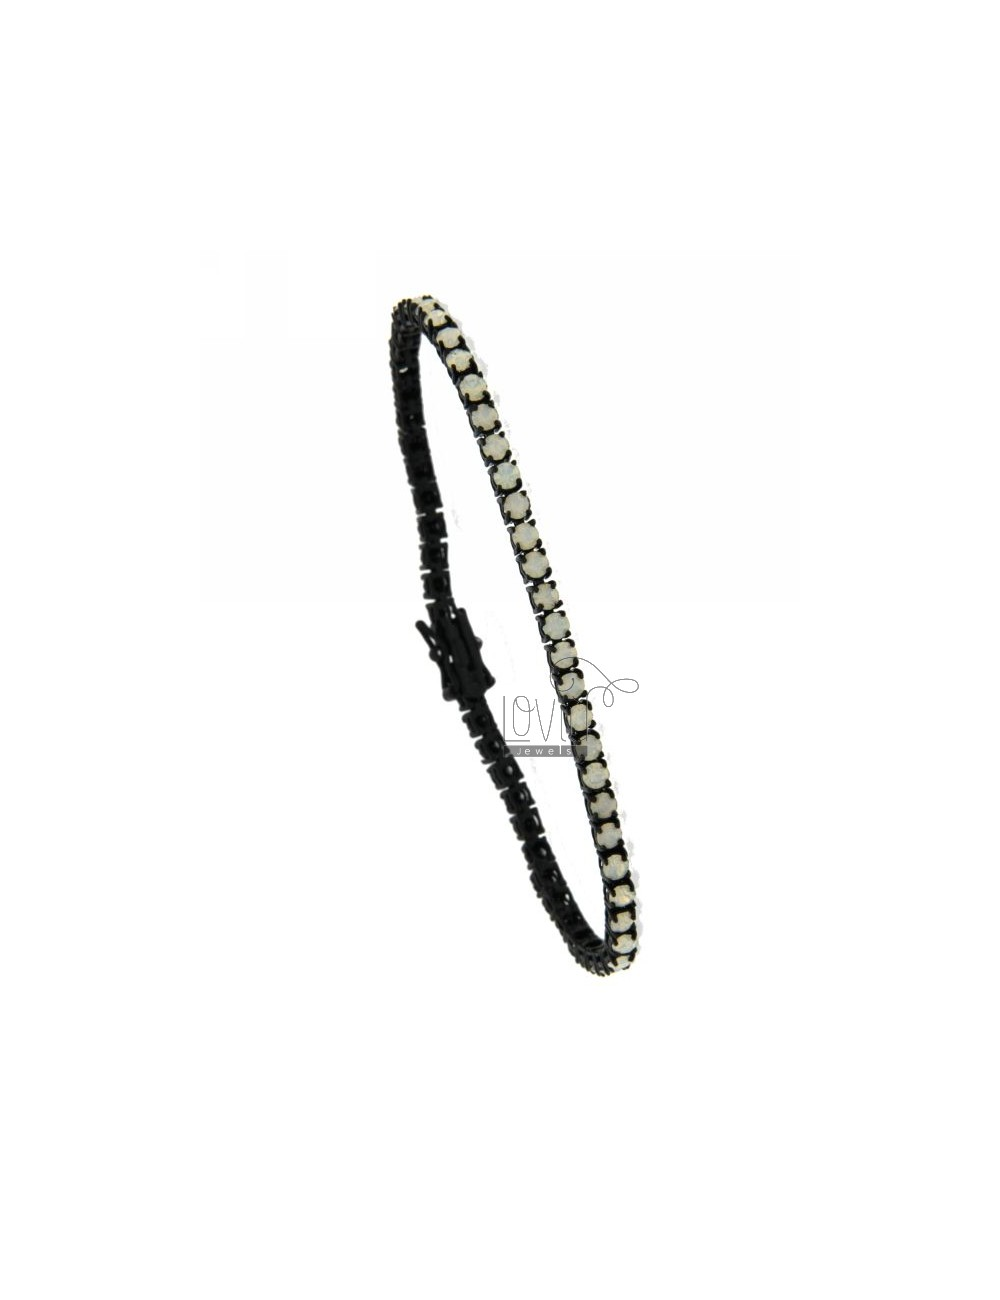 MM 3 RUTENIO PLATED TENNIS BRACELET IN TIT AG.925 AND ZIRCONIA WHITE NORTHERN LIGHTS